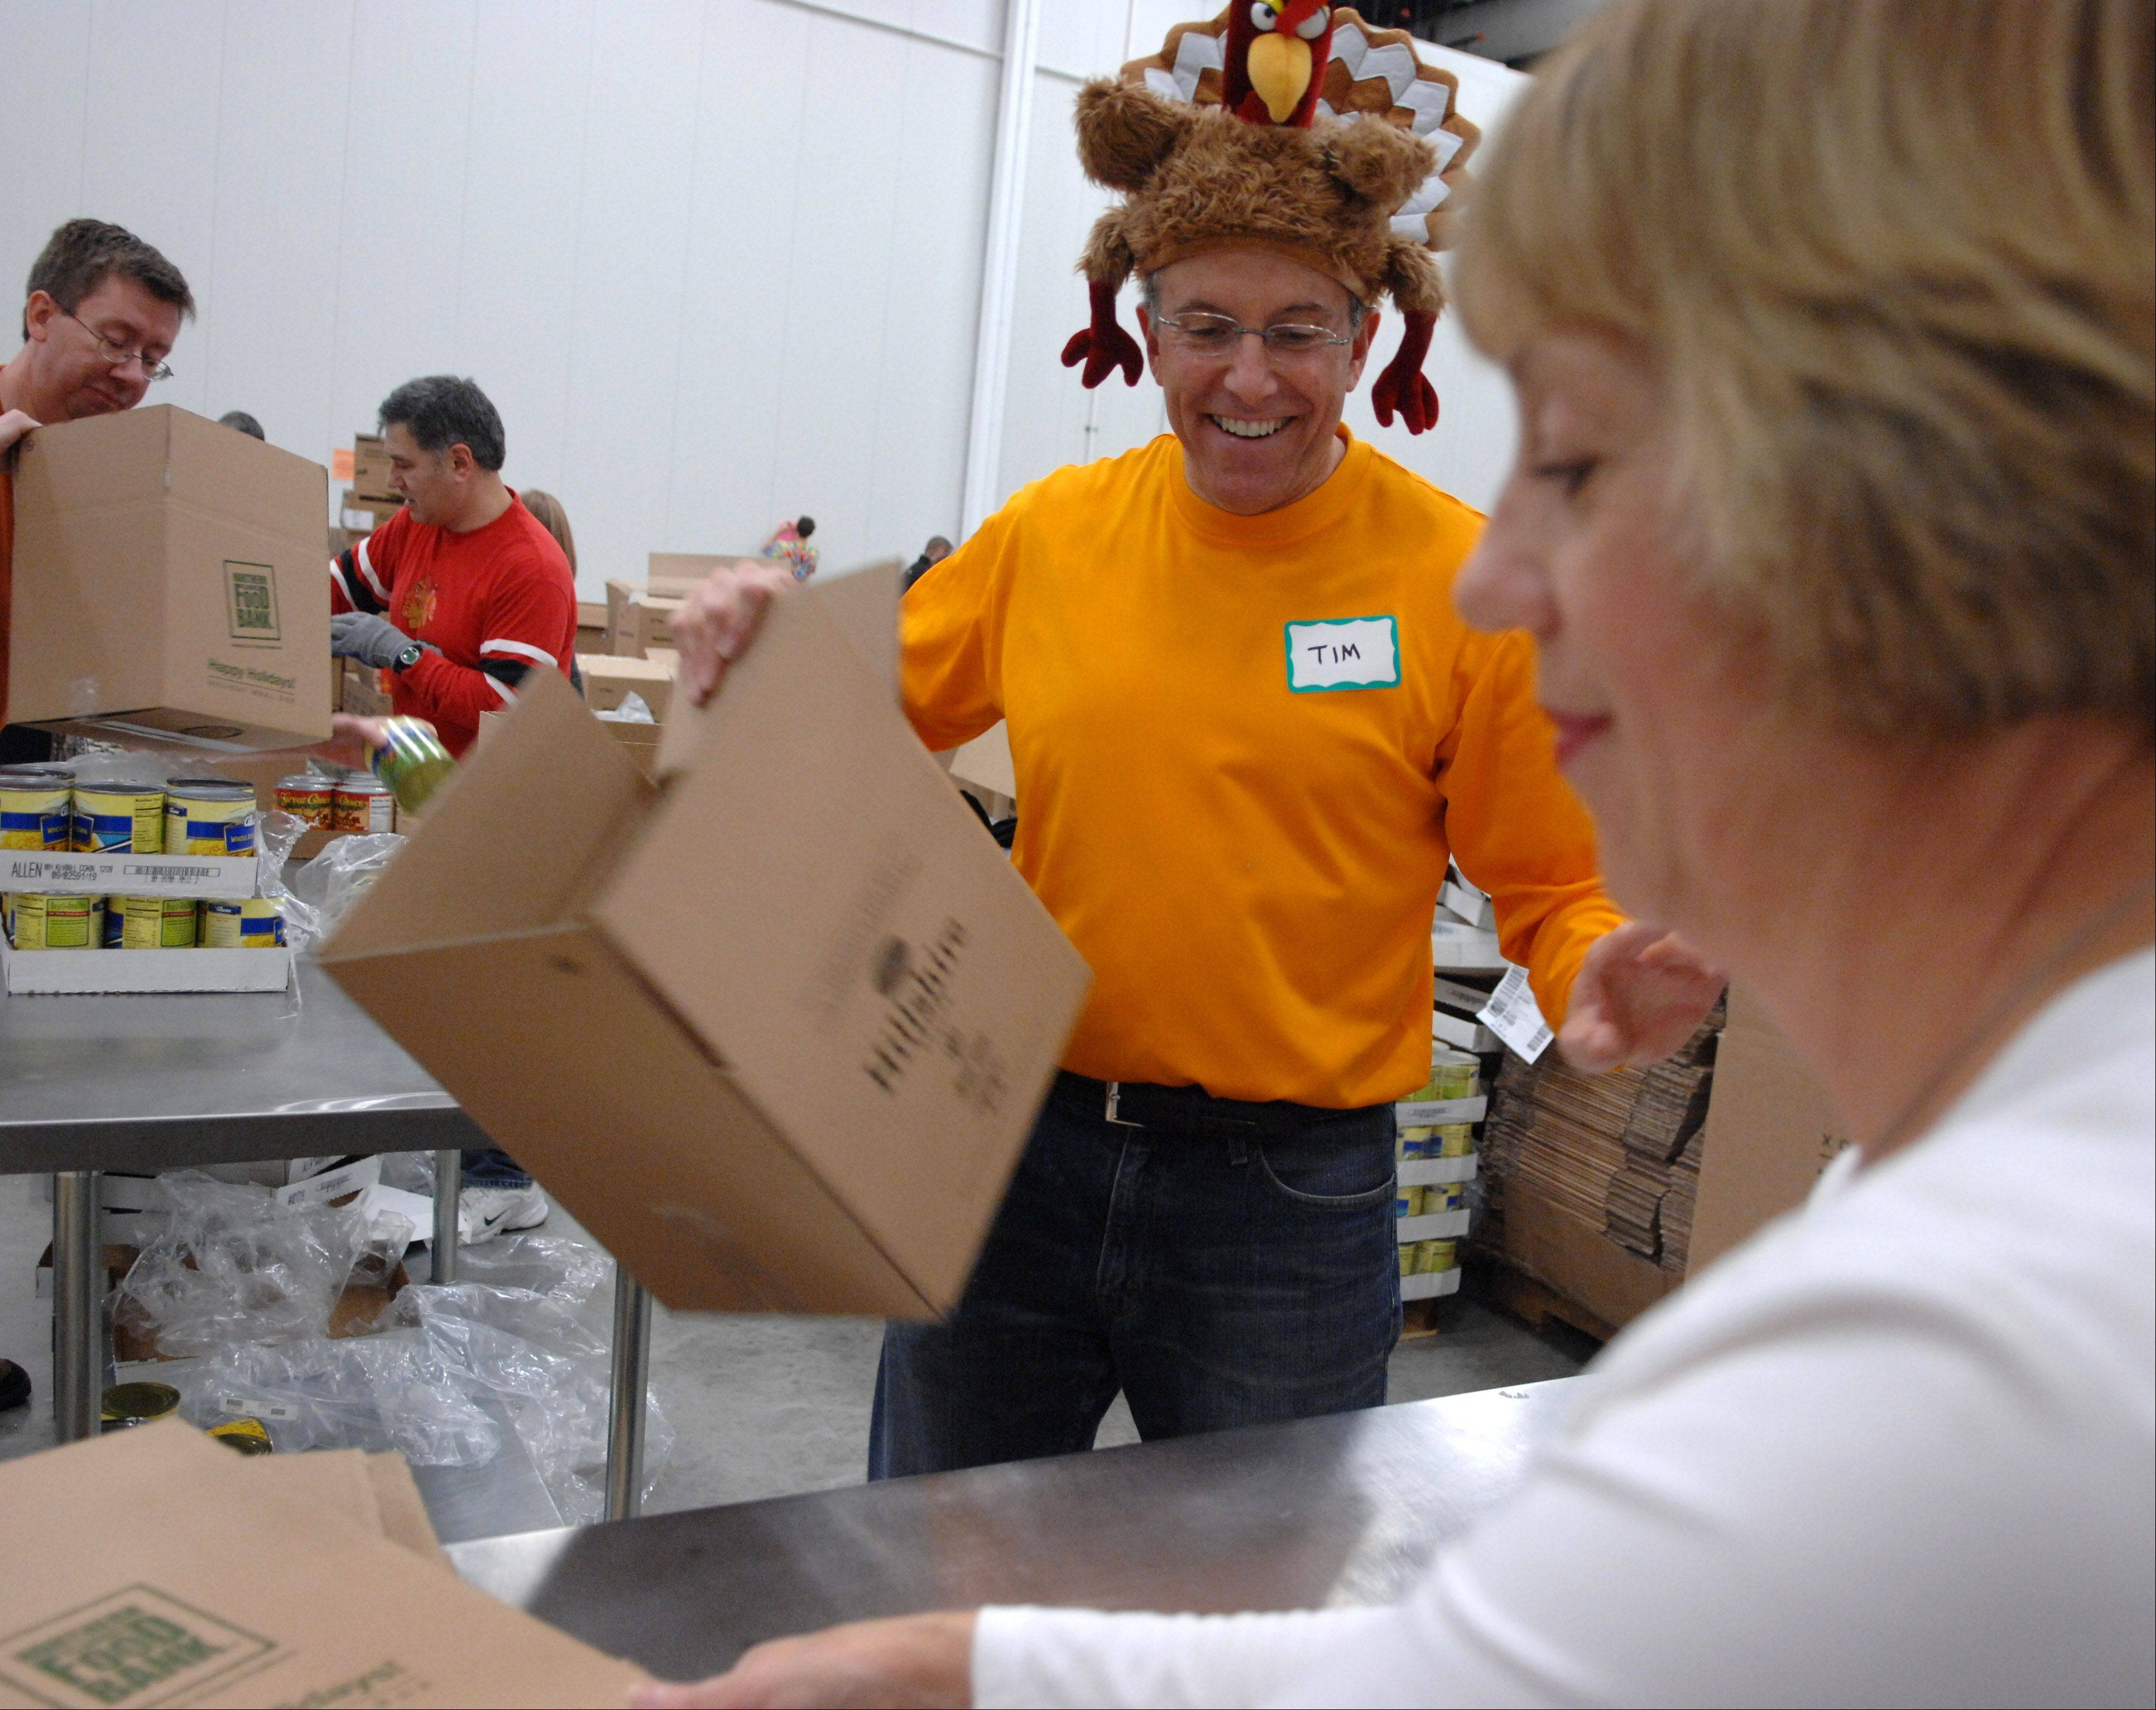 Tim and Donna O�Connor of Wheeling make boxes that are to be loaded with holiday meals as more than 100 employees from Jewel-Osco volunteer Saturday at the Northern Illinois Food Bank in Geneva. The event was one of the first in a six-week program during which the food bank will pack more than 30,000 holiday meals for the less fortunate.